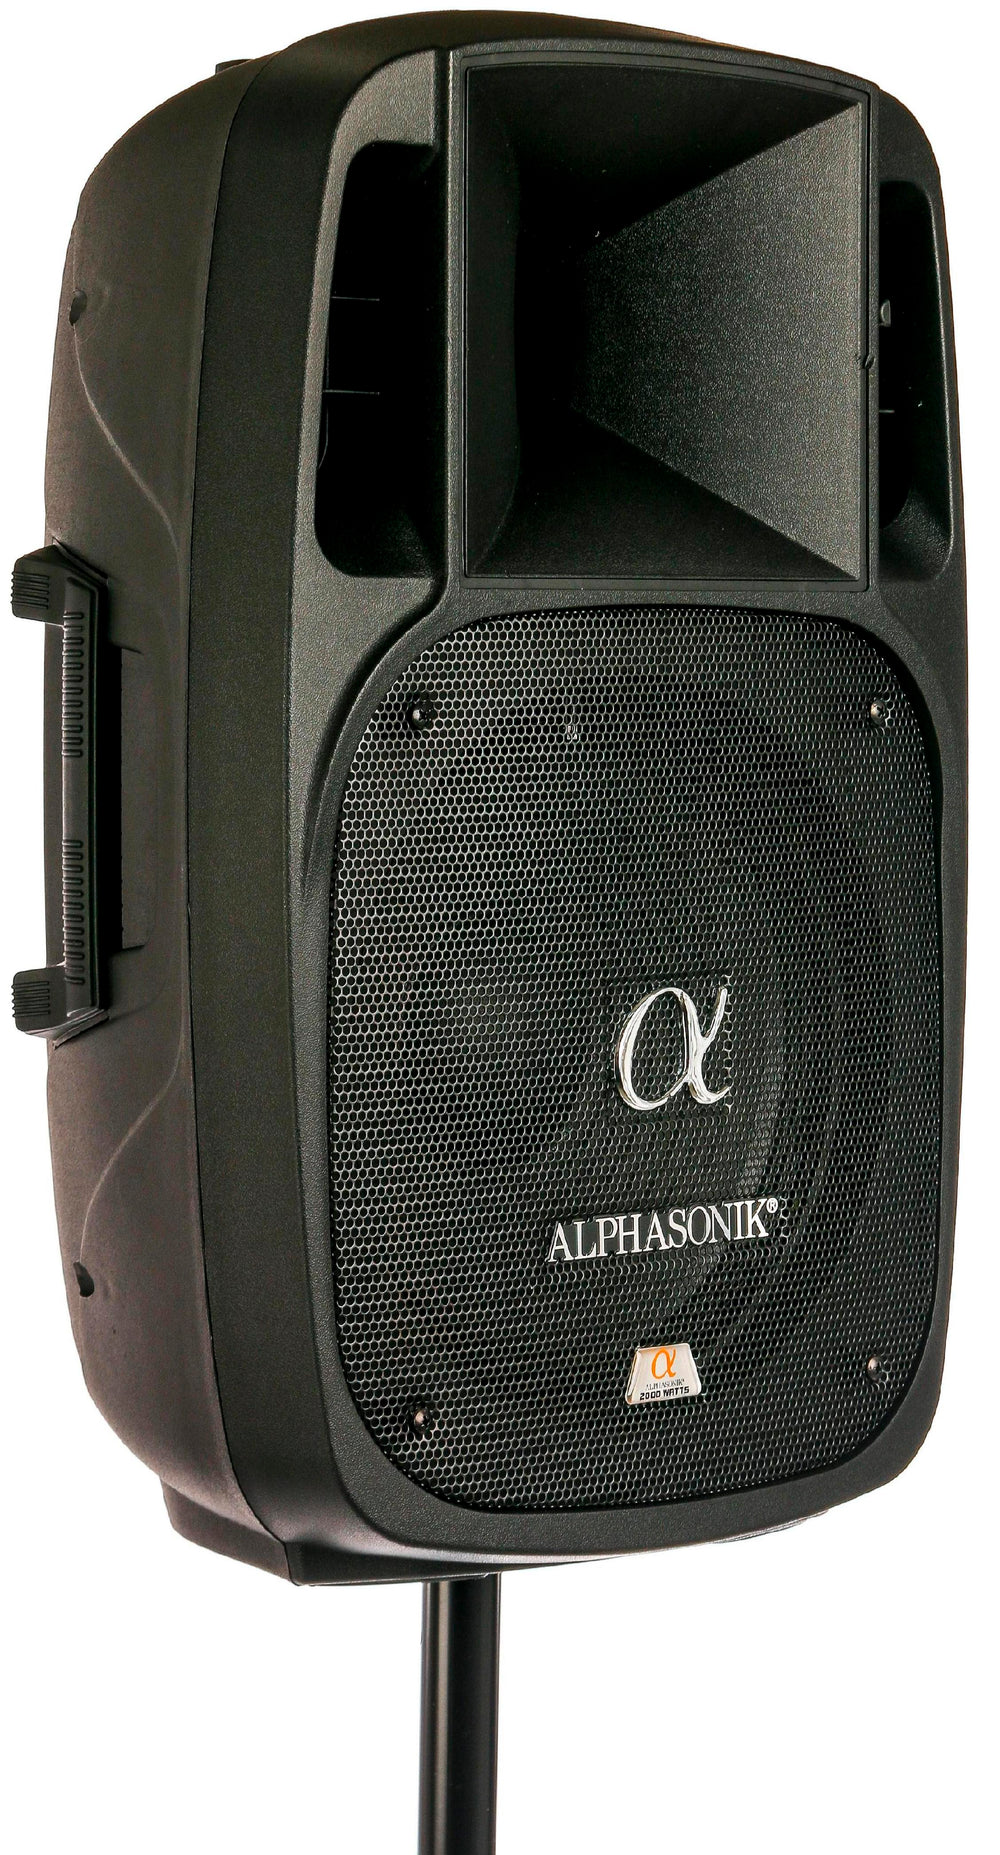 "Alphasonik 15"" Powered 2800W PRO DJ Amplified Loud Speaker Bluetooth USB SD Card AUX MP3 FM Radio PA System LED Ring Karaoke Feature Mic (Main Monitor, Band, Church, Party, Guitar Amp) w/ Tripod Stand"